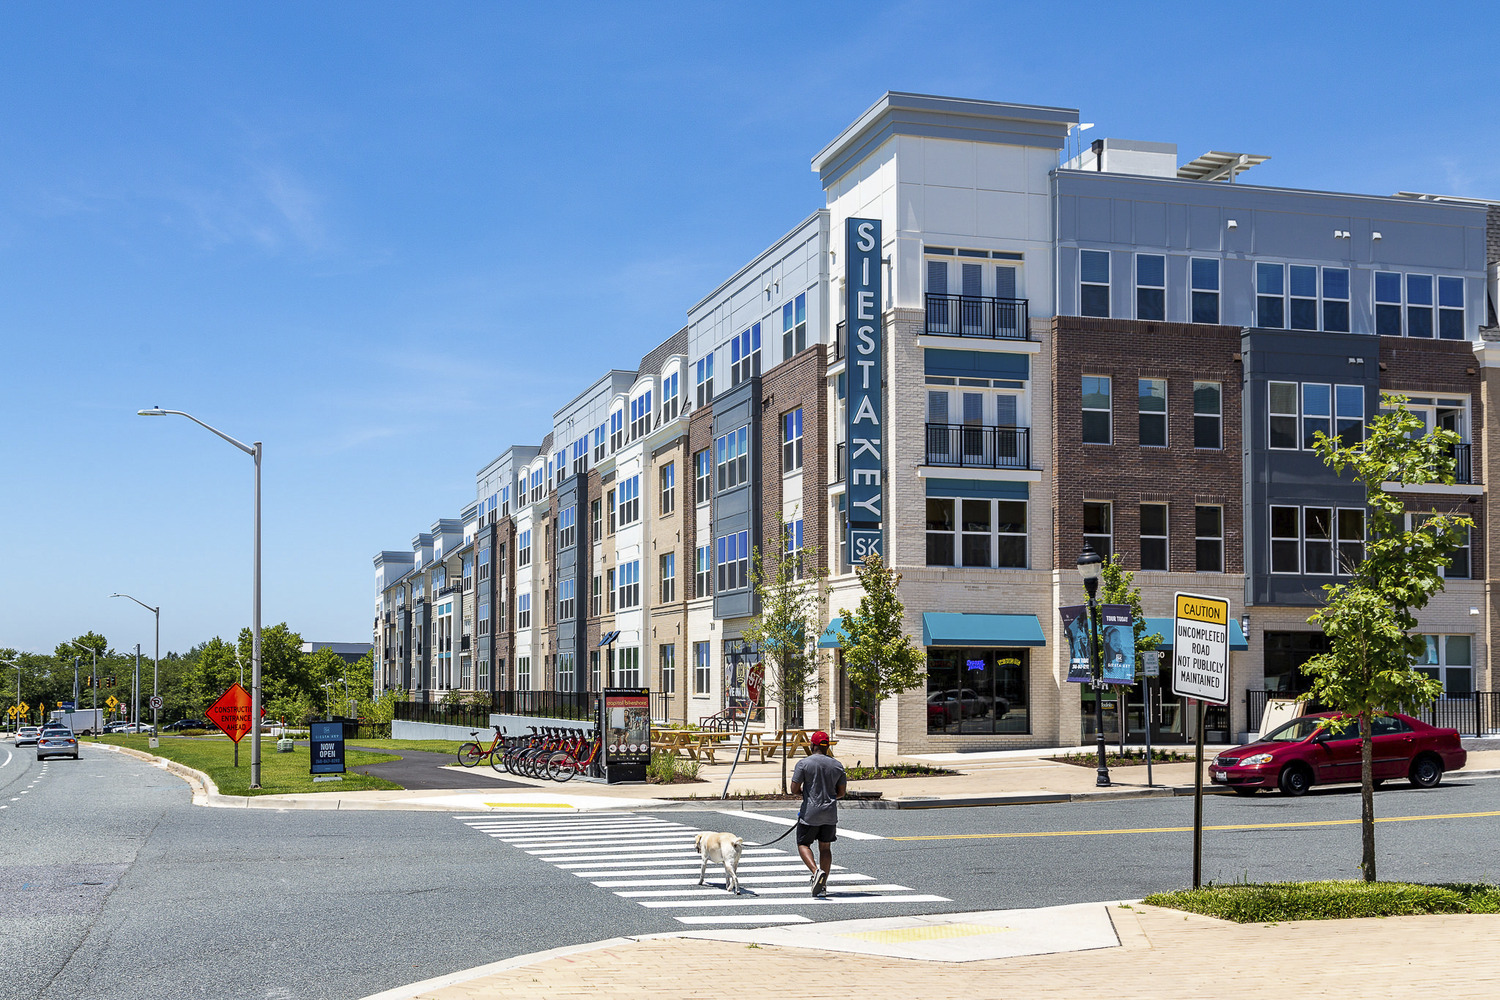 CBG builds Bell Shady Grove, a 315-Unit Mixed-Use Community with Amenities in Rockville, MD - Image #10